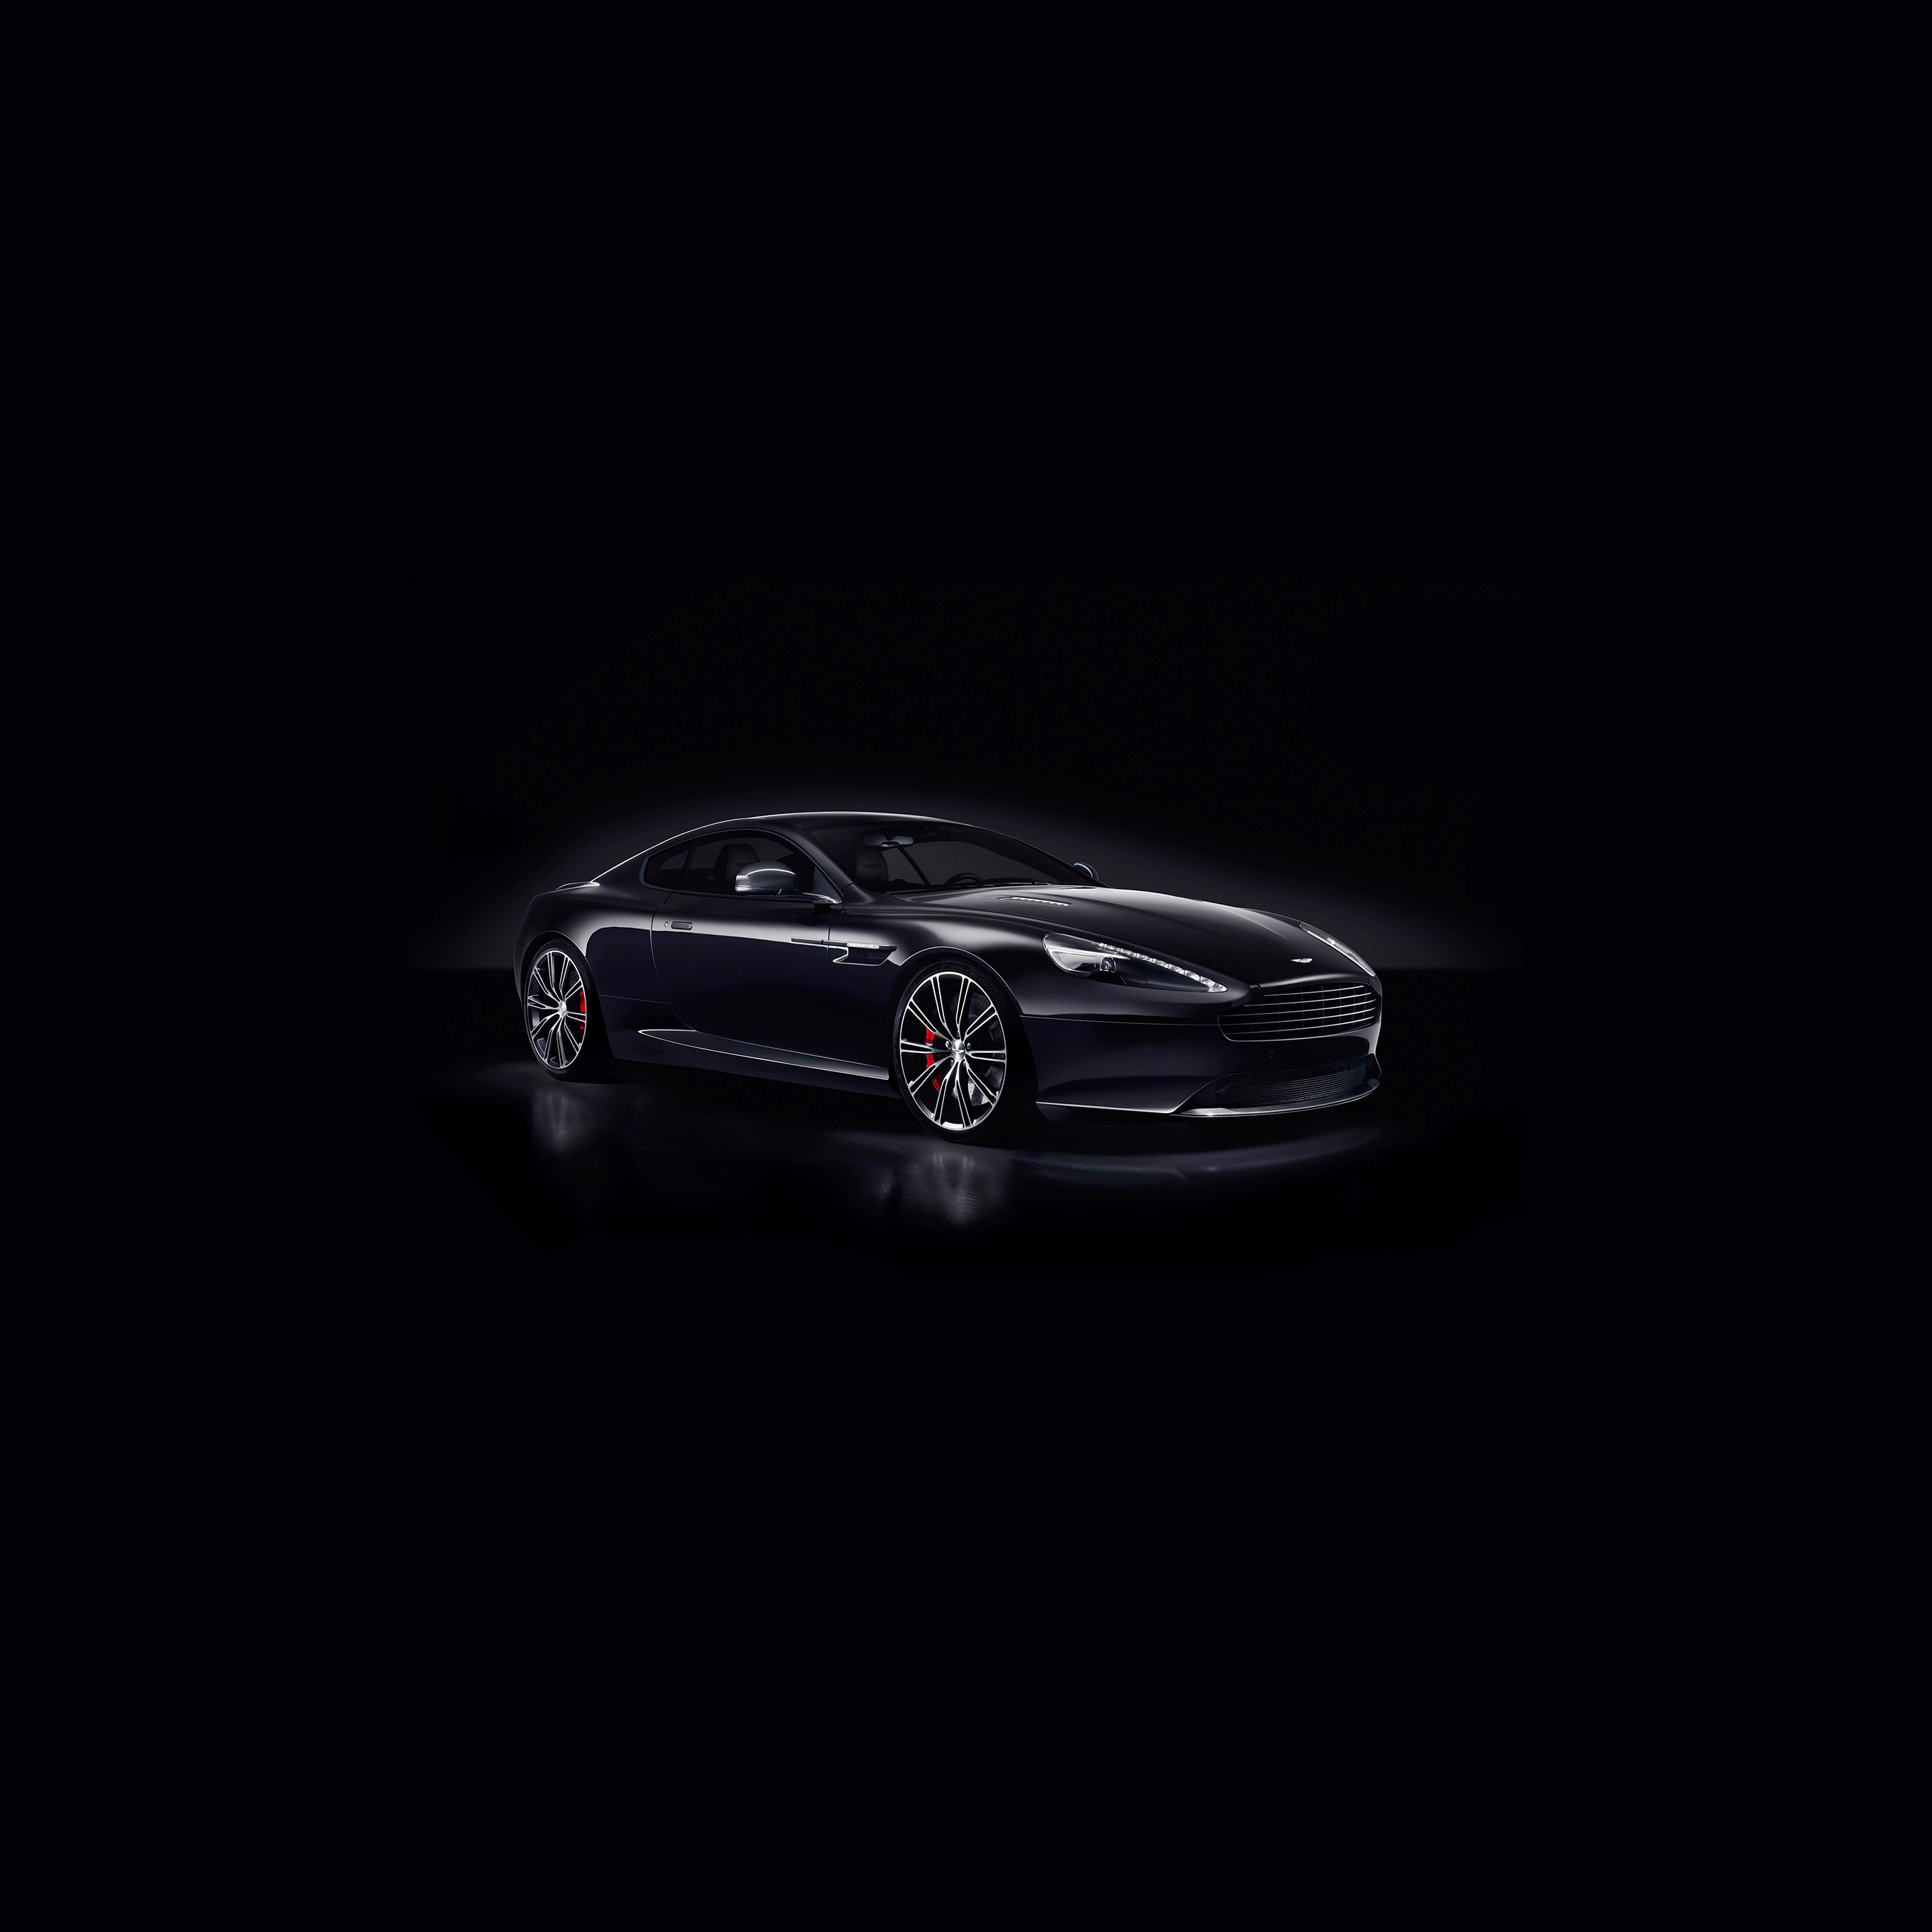 Papers Co Ipad Wallpaper Am30 Aston Martin Db9 Dark Sports Car